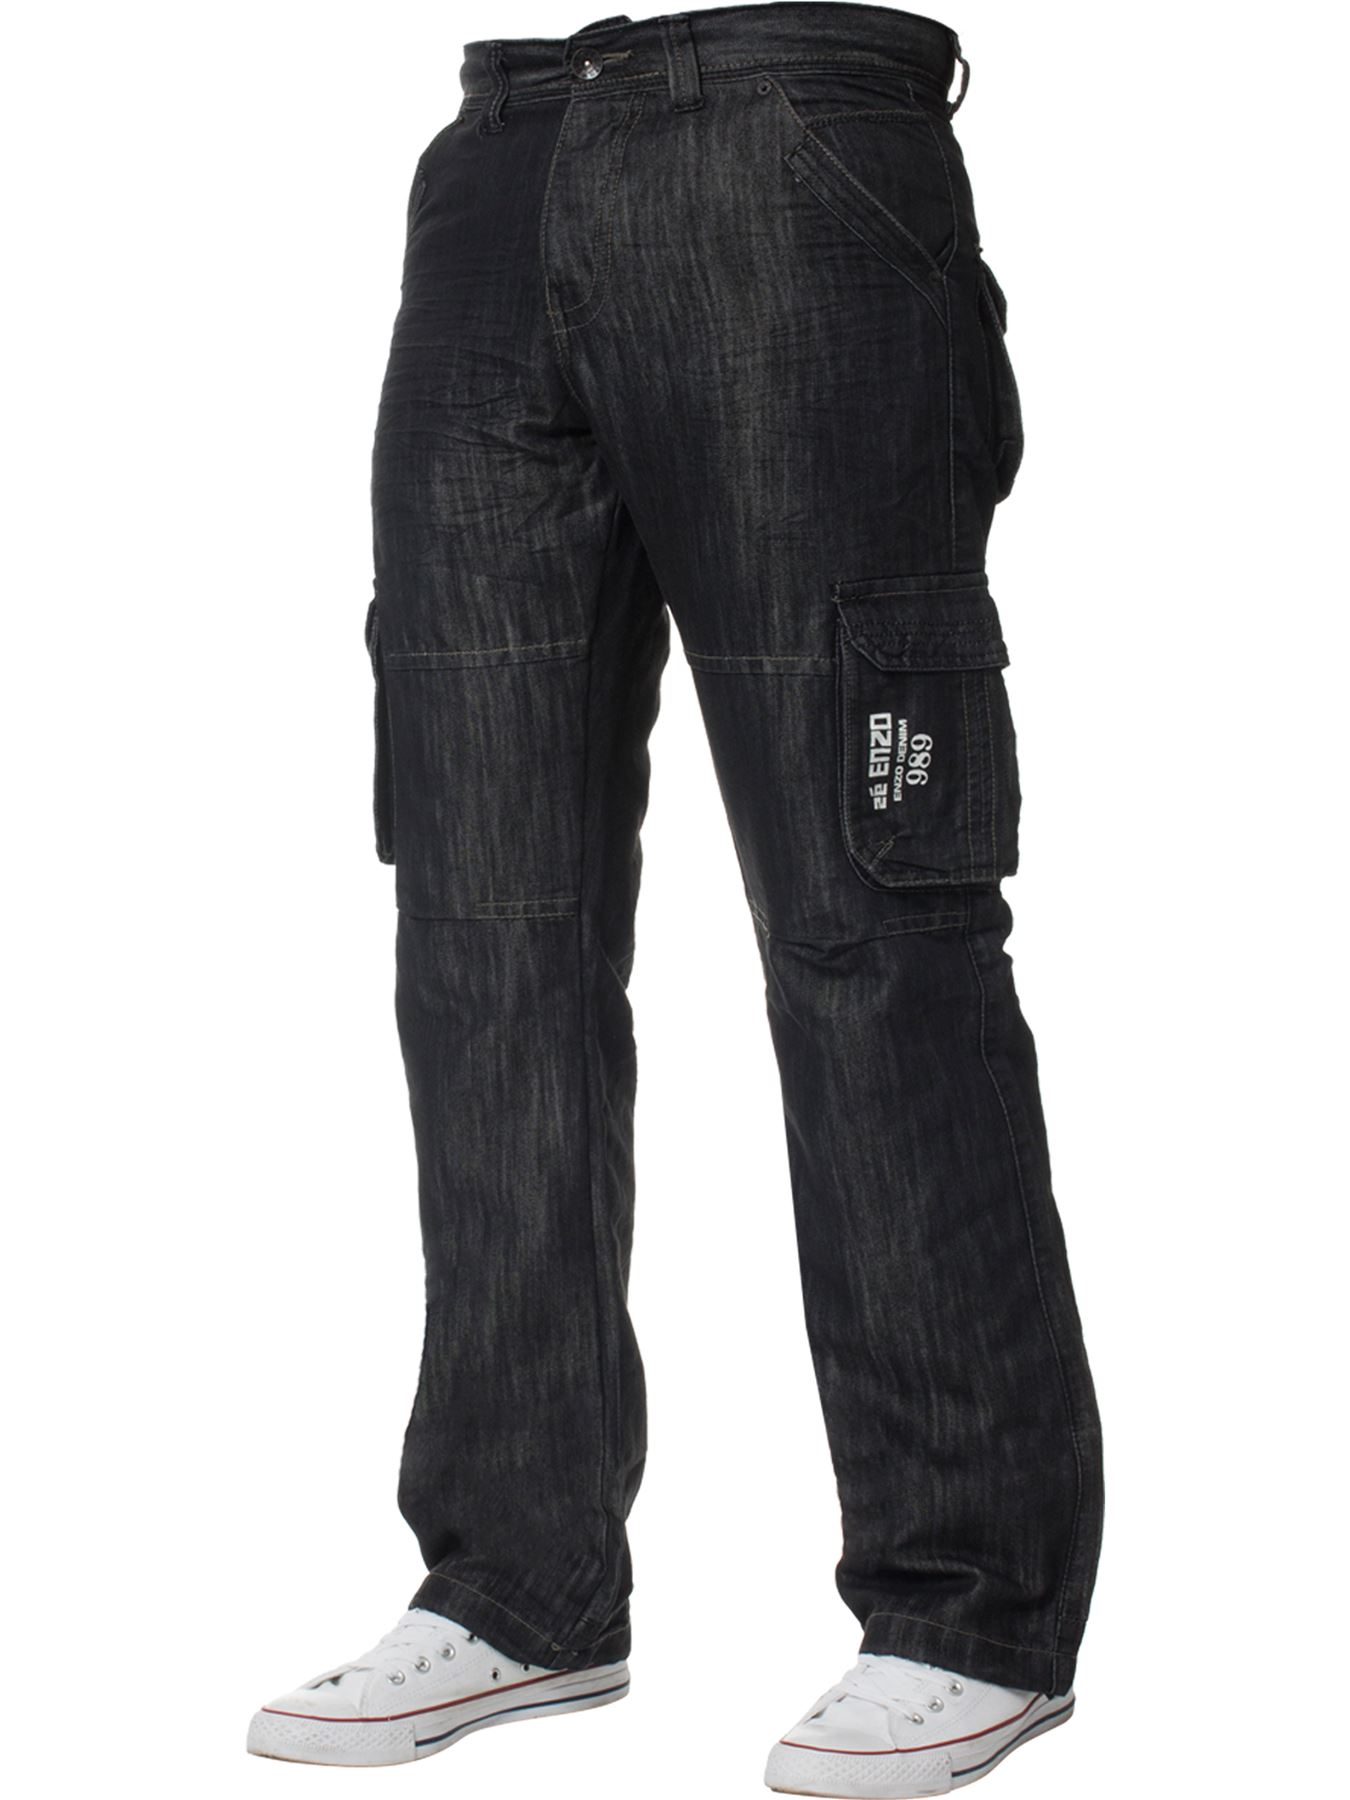 Enzo-Mens-Cargo-Combat-Trousers-Jeans-Work-Casual-Denim-Pants-Big-Tall-All-Waist thumbnail 3